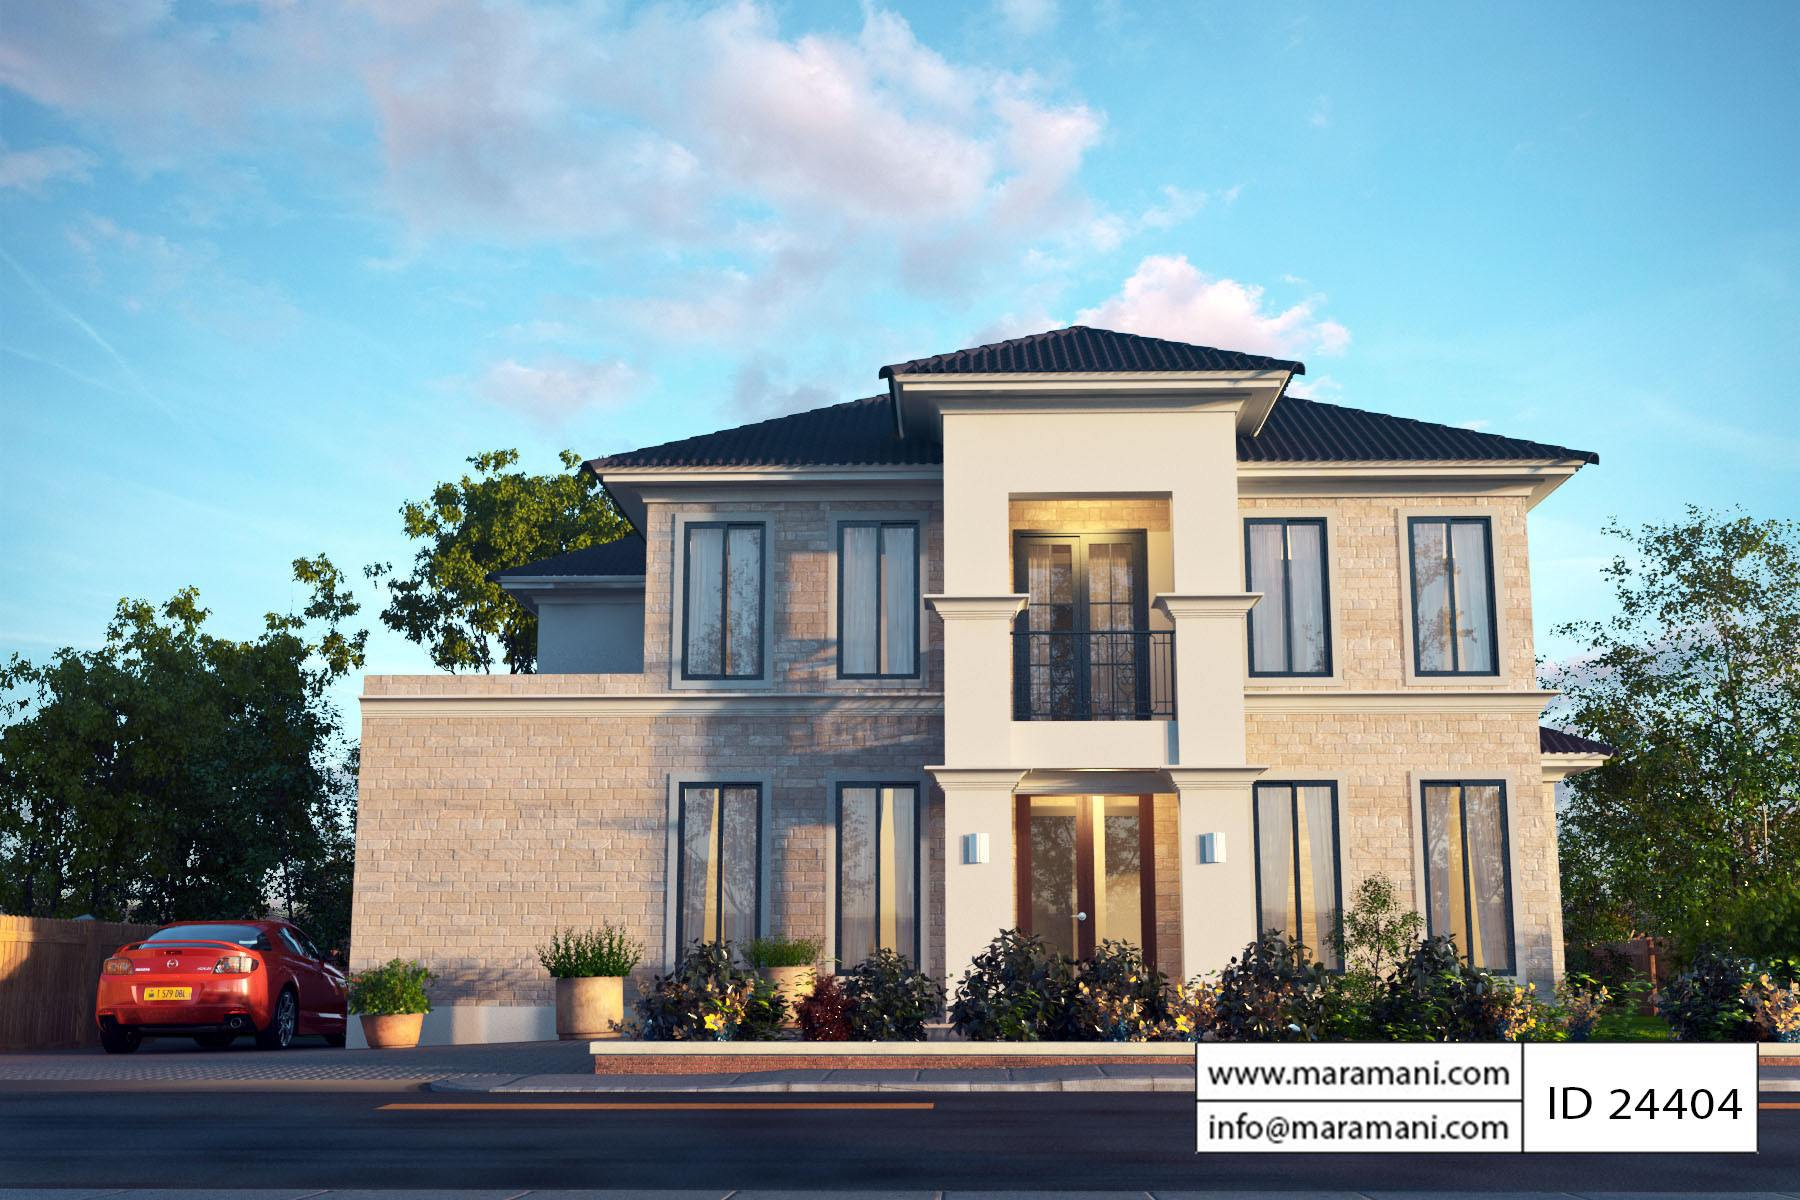 Four Bedroom Modern House Plan - House Plans Maramani.com